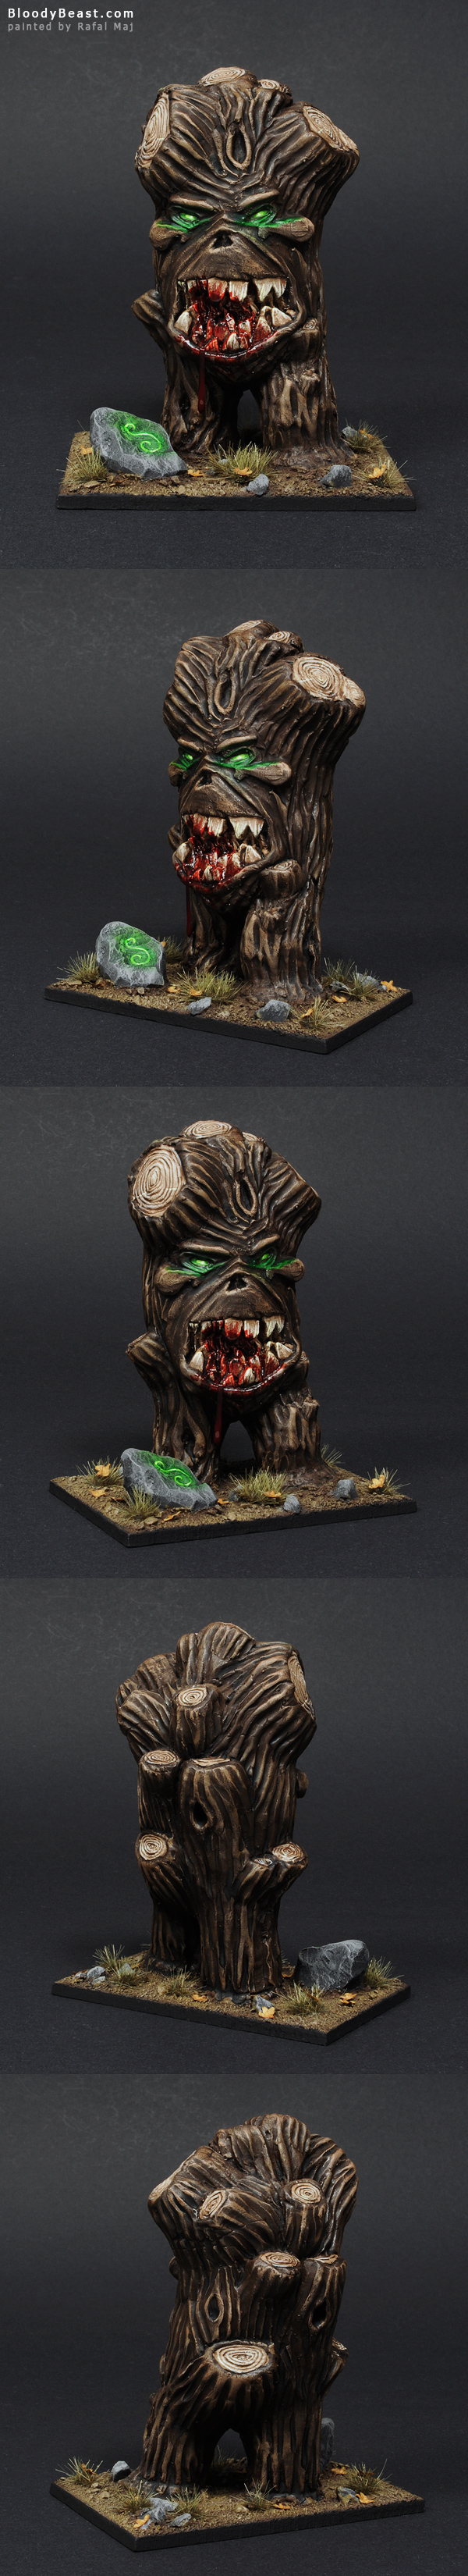 BloodyBeast Treeman painted by Rafal Maj (BloodyBeast.com)